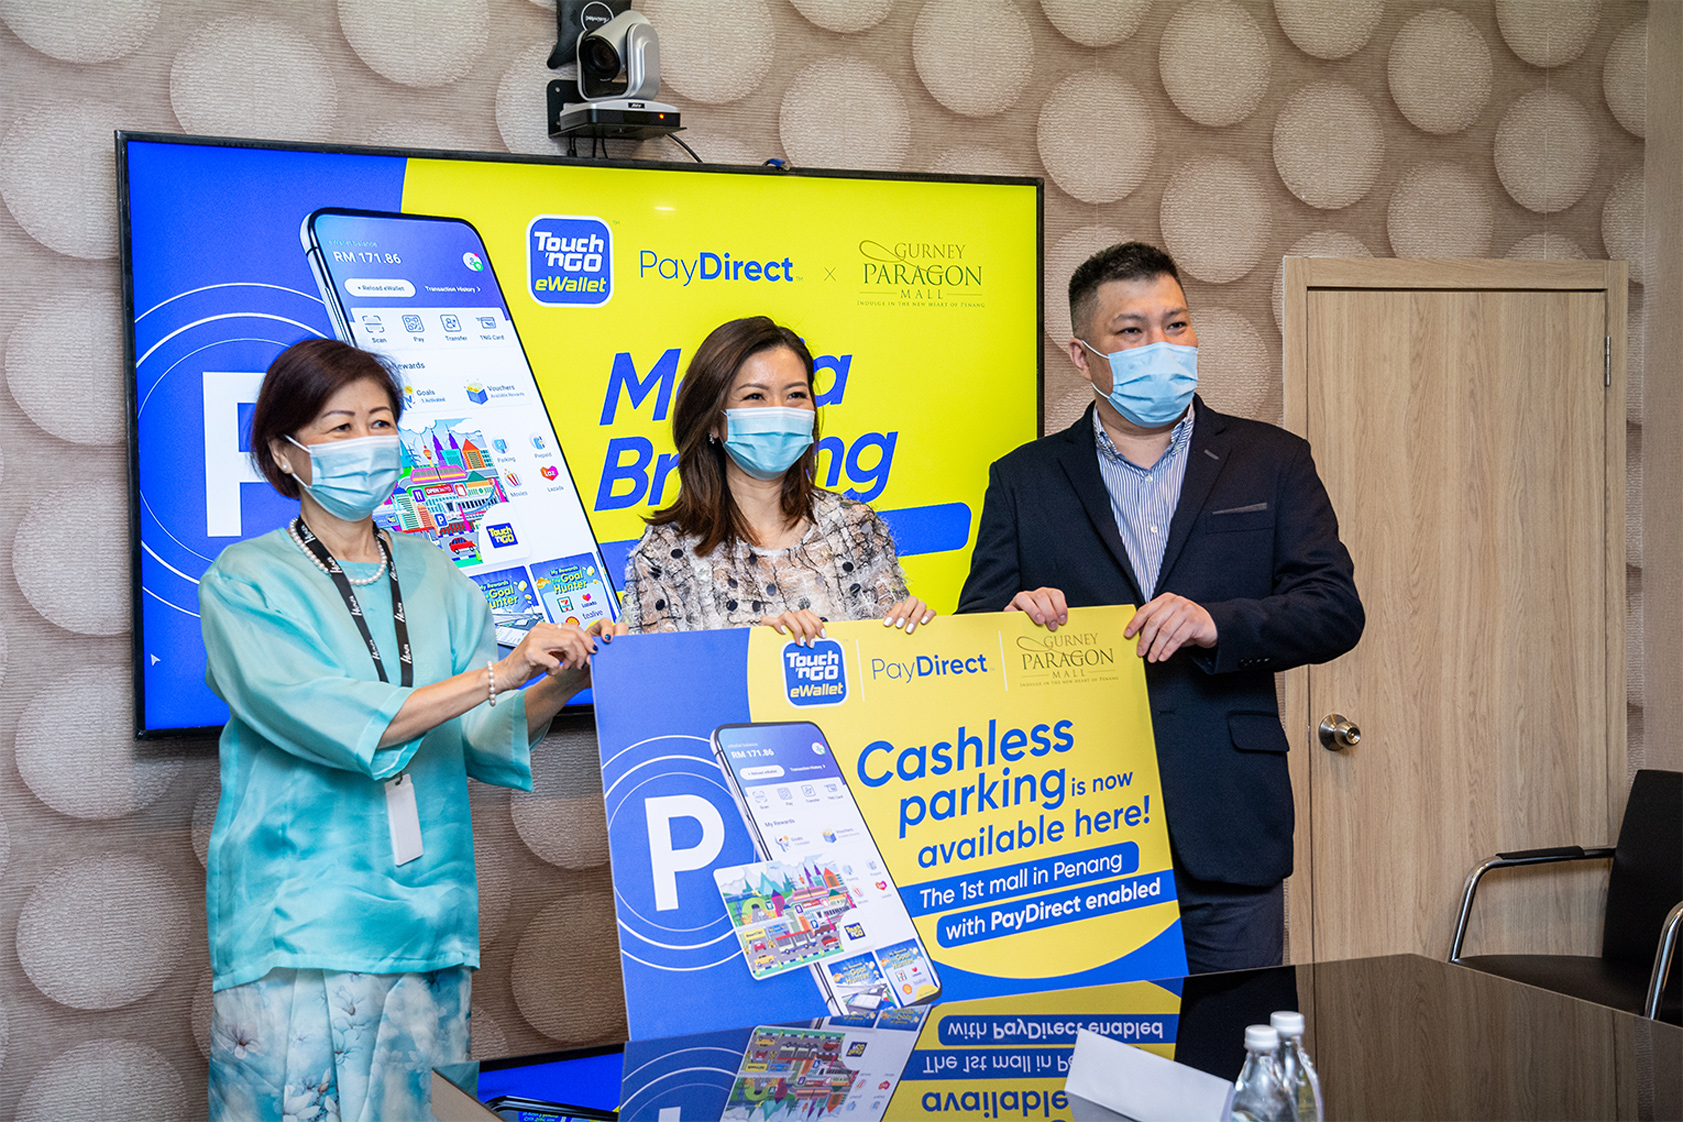 Parking made easier with Touch 'n Go PayDirect at Gurney Paragon Mall